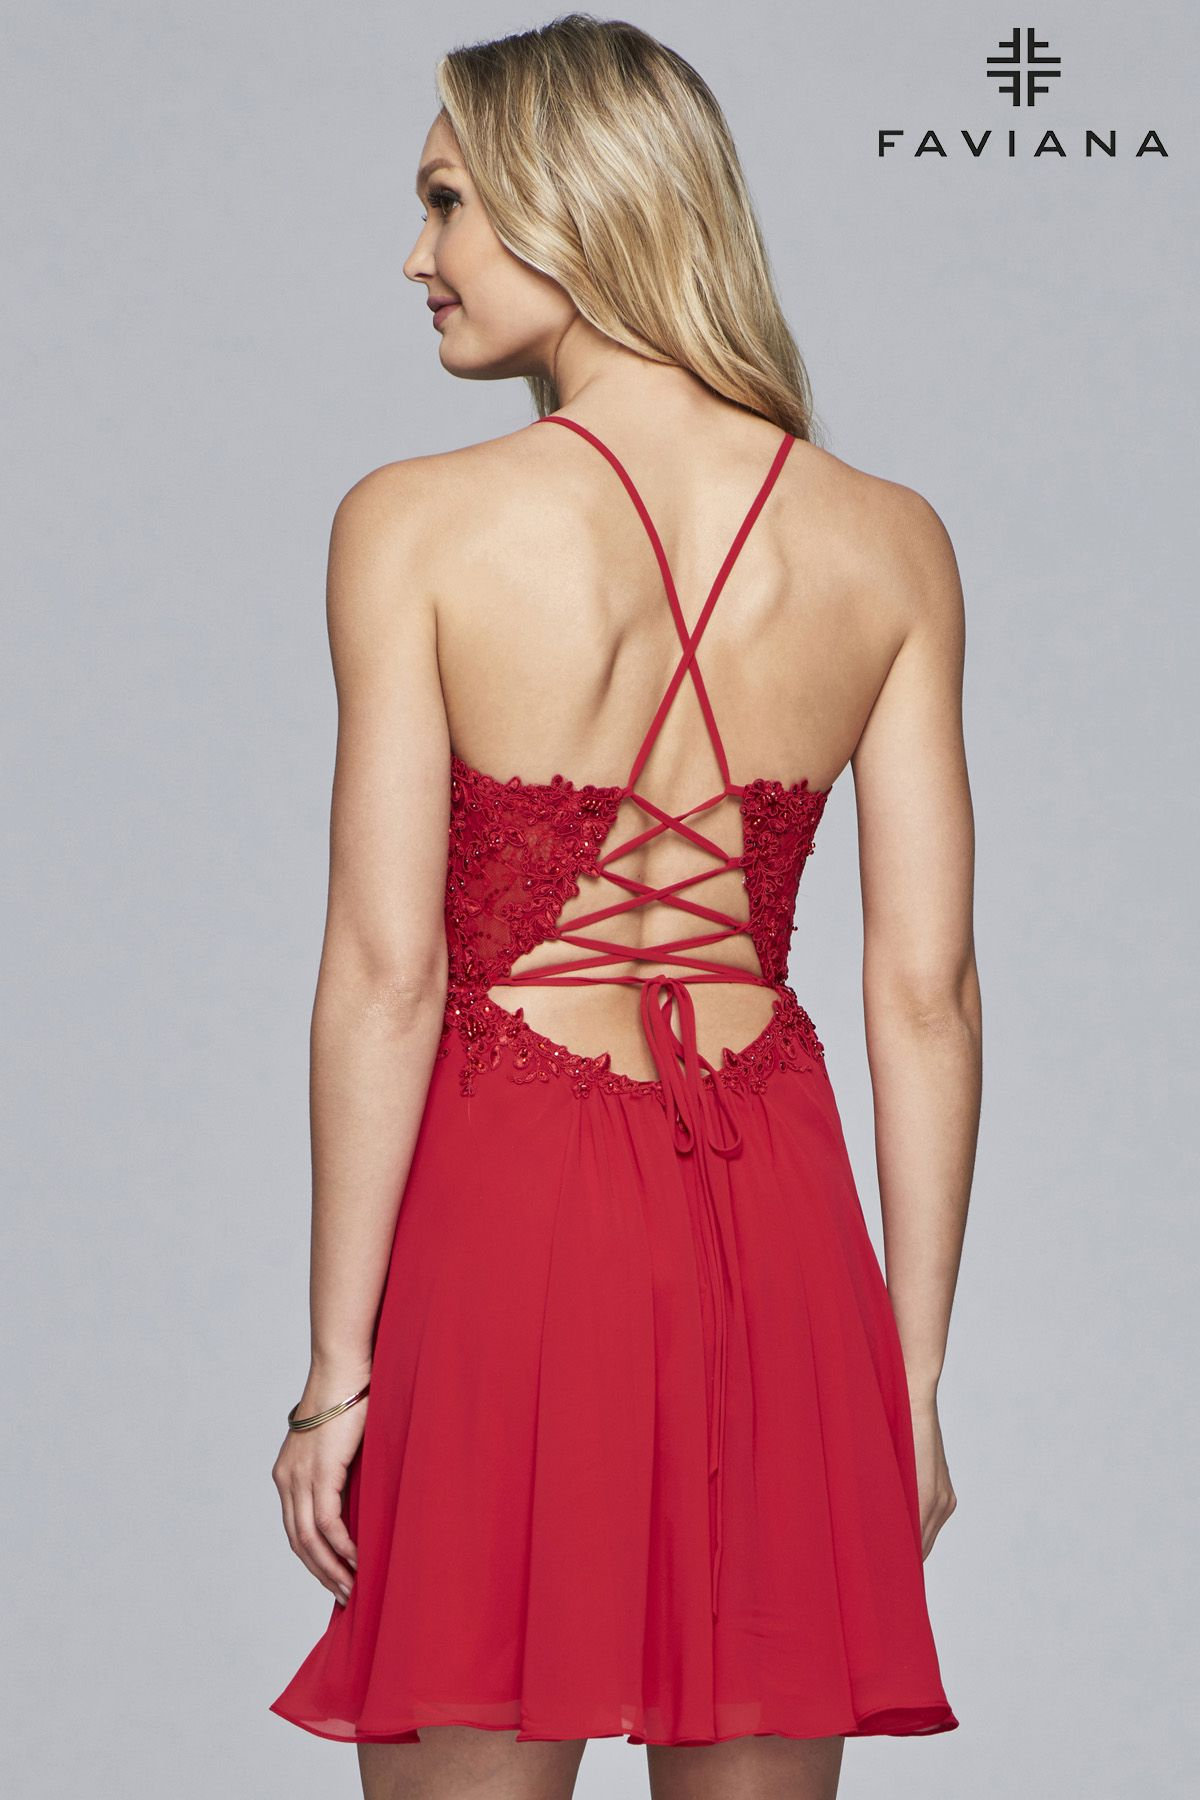 761831e807a Faviana Style 10151 is sparkling and flirtatious! This little V-neck  chiffon cocktail dress is perfectly flattering on an hourglass figure.